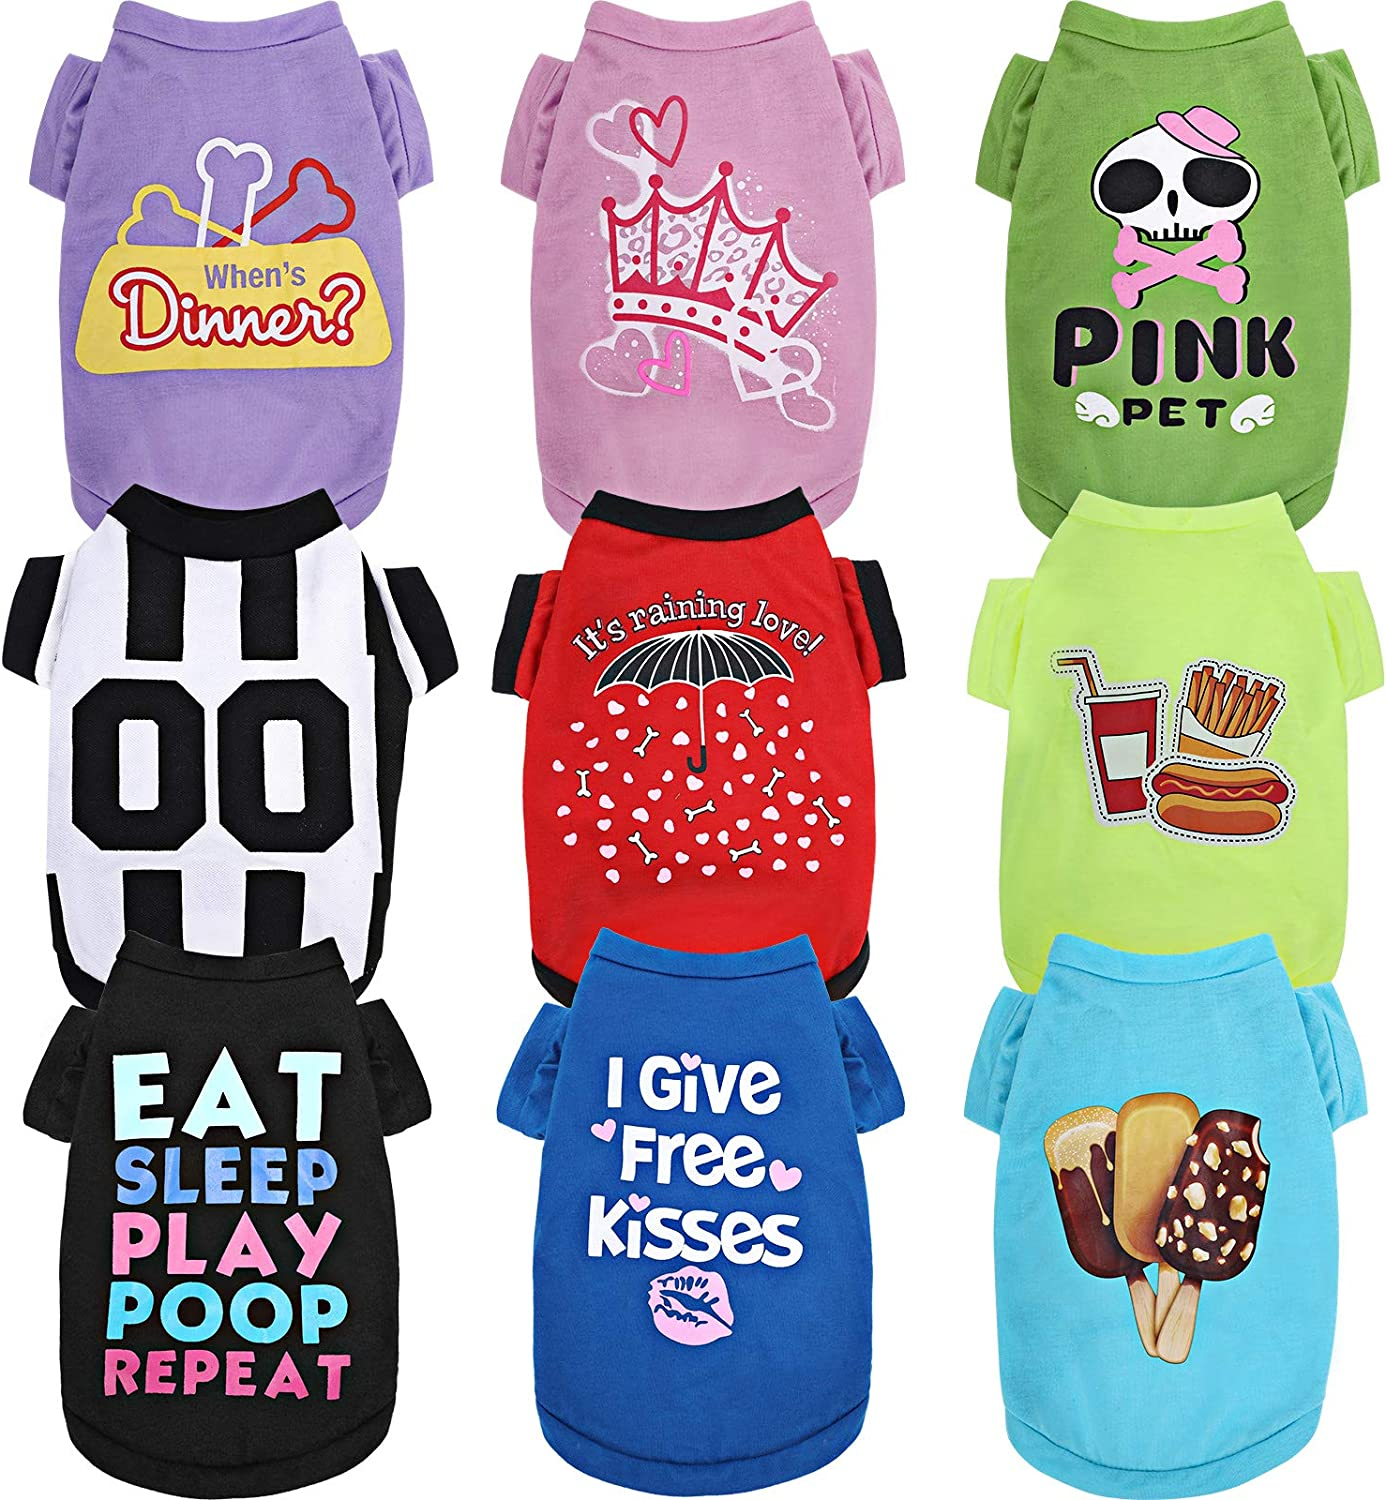 9 Pieces Printed Pet Shirt Set Striped Dog Clothes Soft Breathable Pet T-Shirt Colorful Summer Puppy Sweatshirt Pullover Clothes for Small Medium Large Dogs Puppy Cats (S)